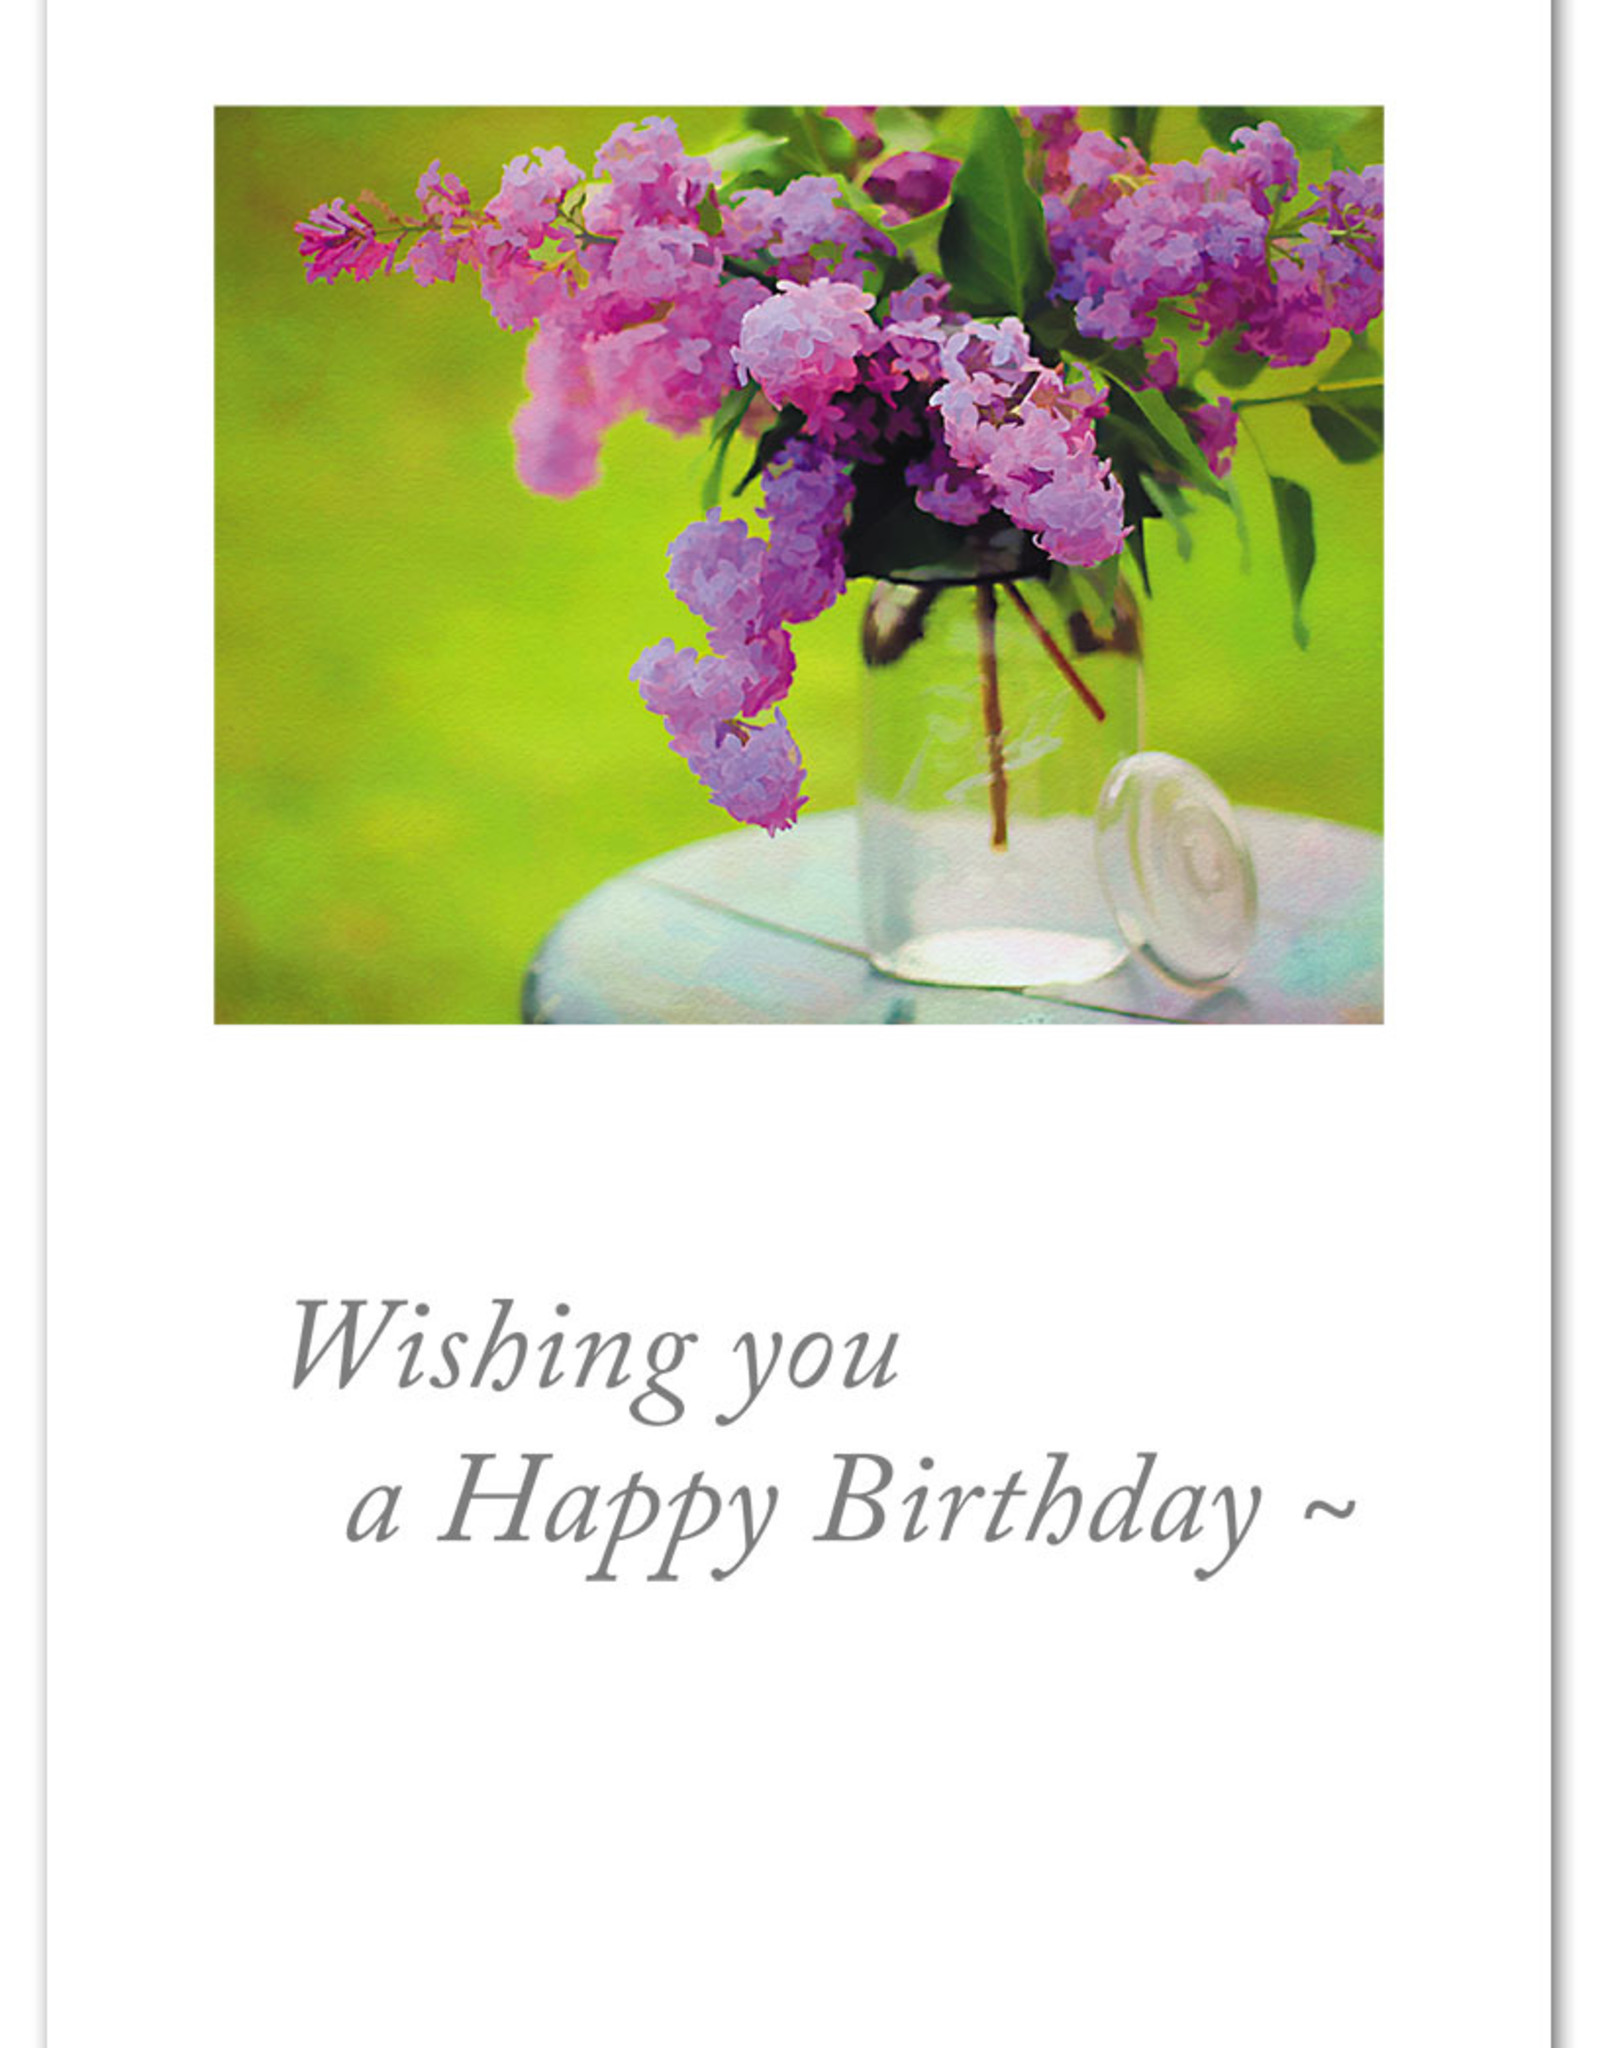 Cardthartic Cardthartic - Wishing You a Happy Birthday Flowers Card